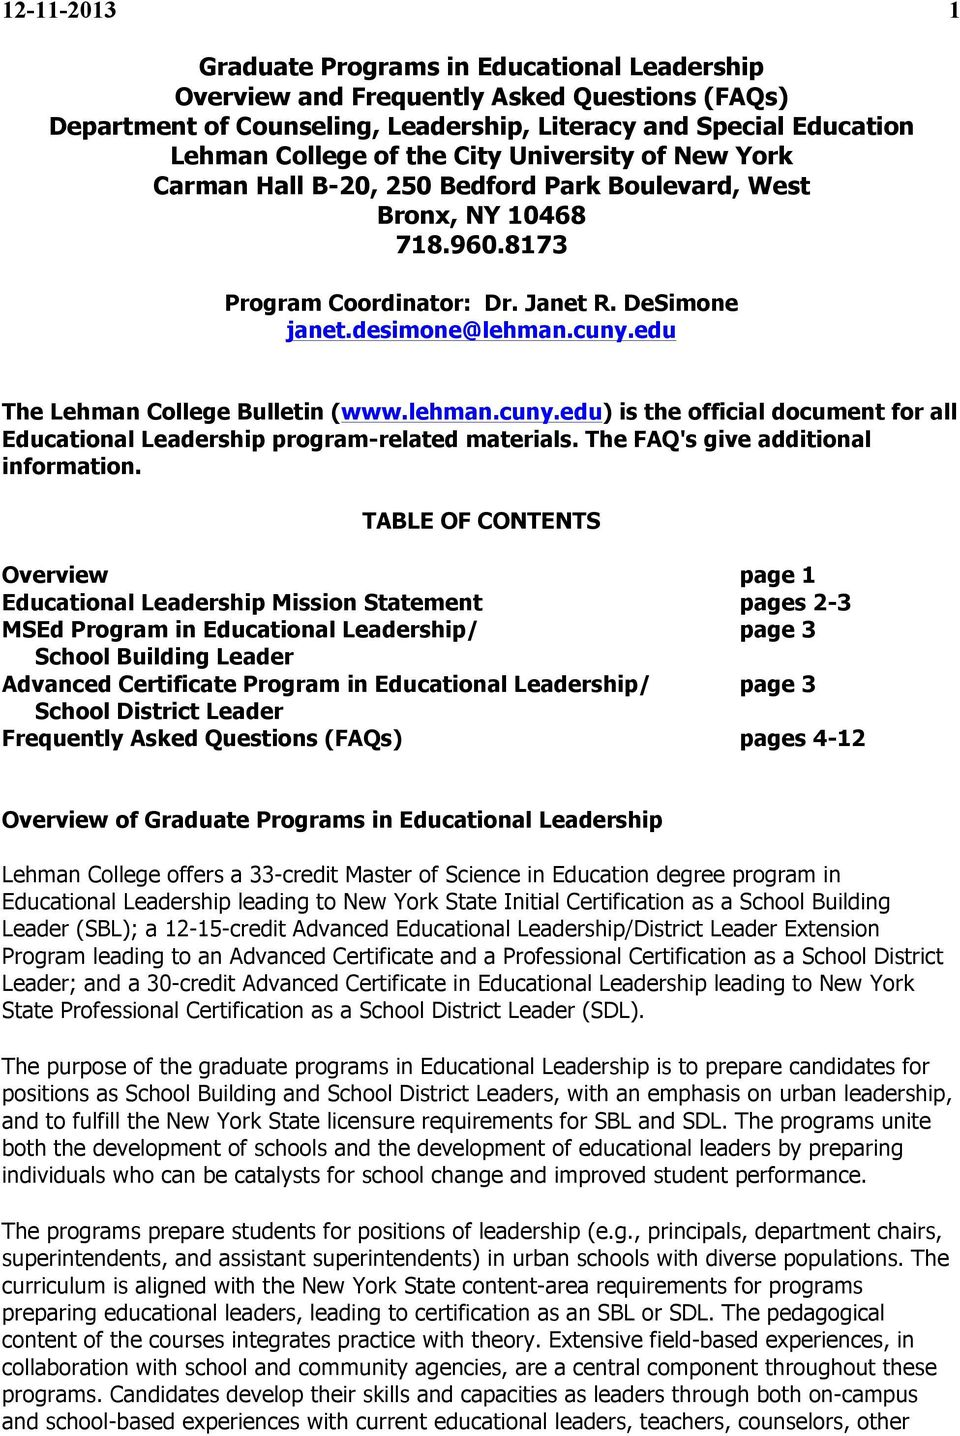 edu The Lehman College Bulletin (www.lehman.cuny.edu) is the official document for all Educational Leadership program-related materials. The FAQ's give additional information.